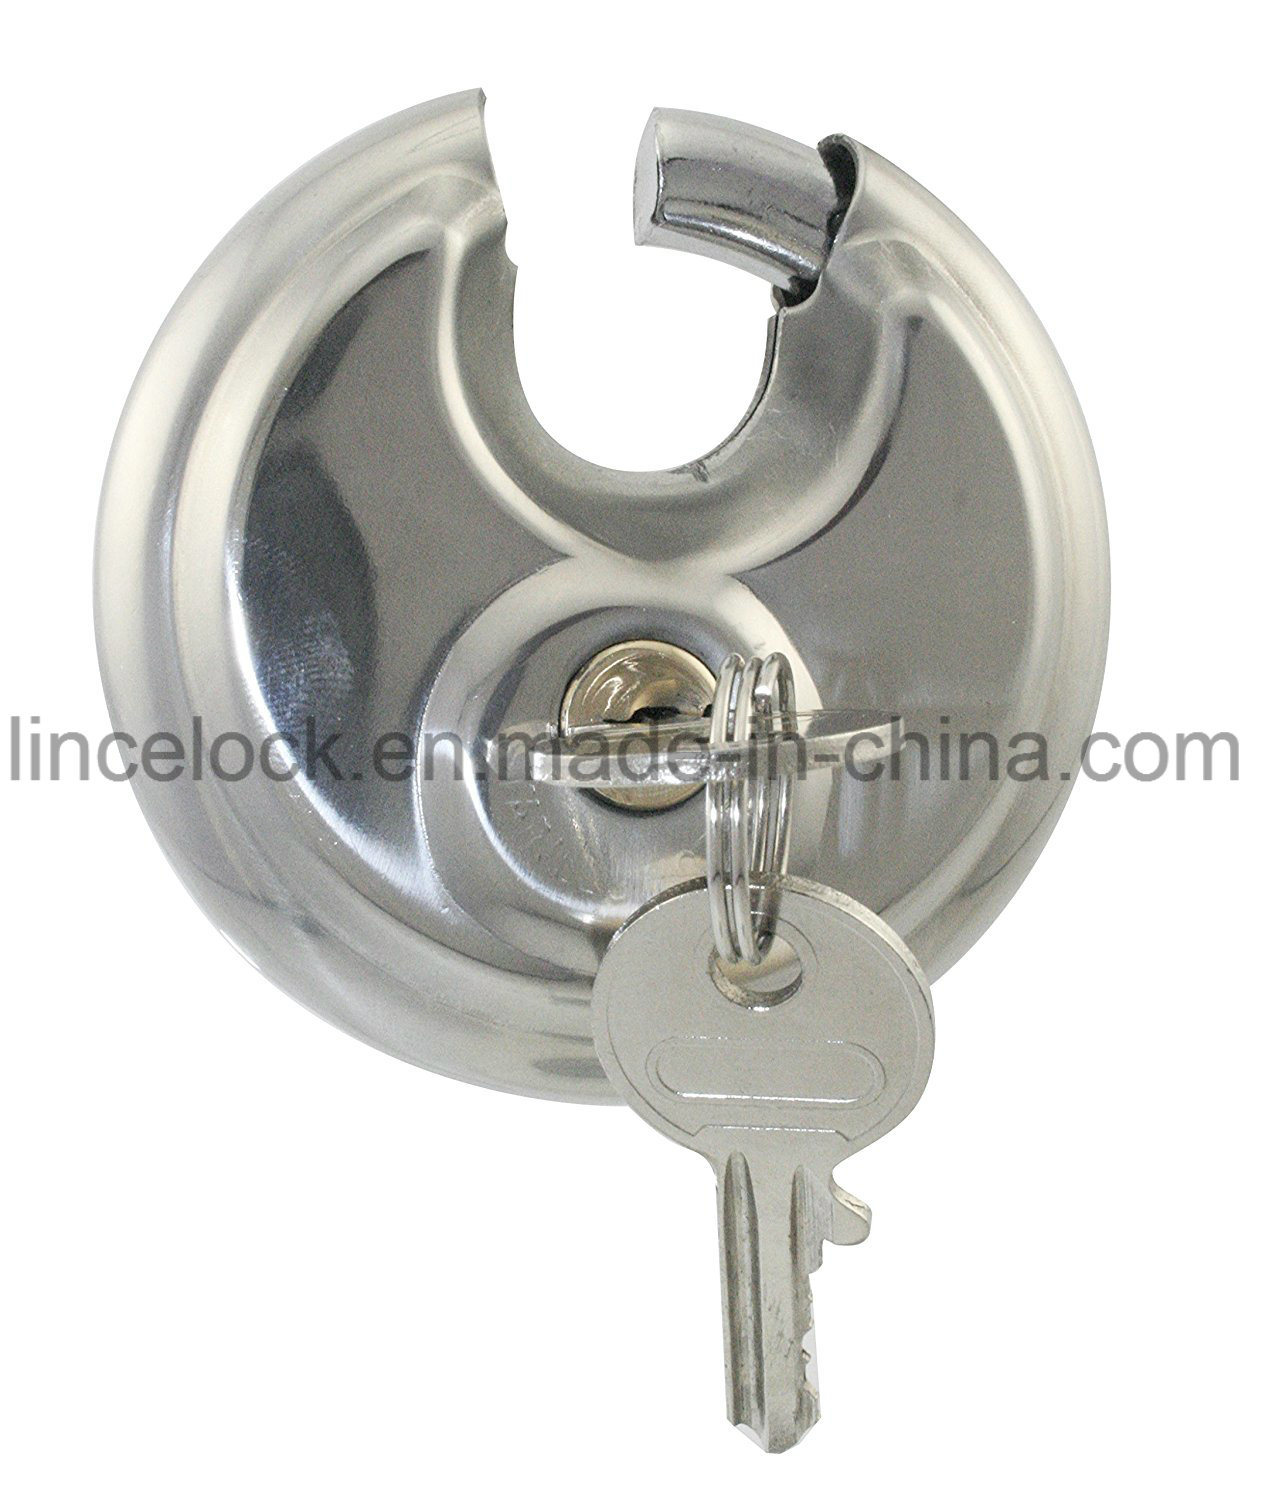 Padlock, Disc Padlock/Stainless Steel Dimple Key Disc Padlock (203) pictures & photos